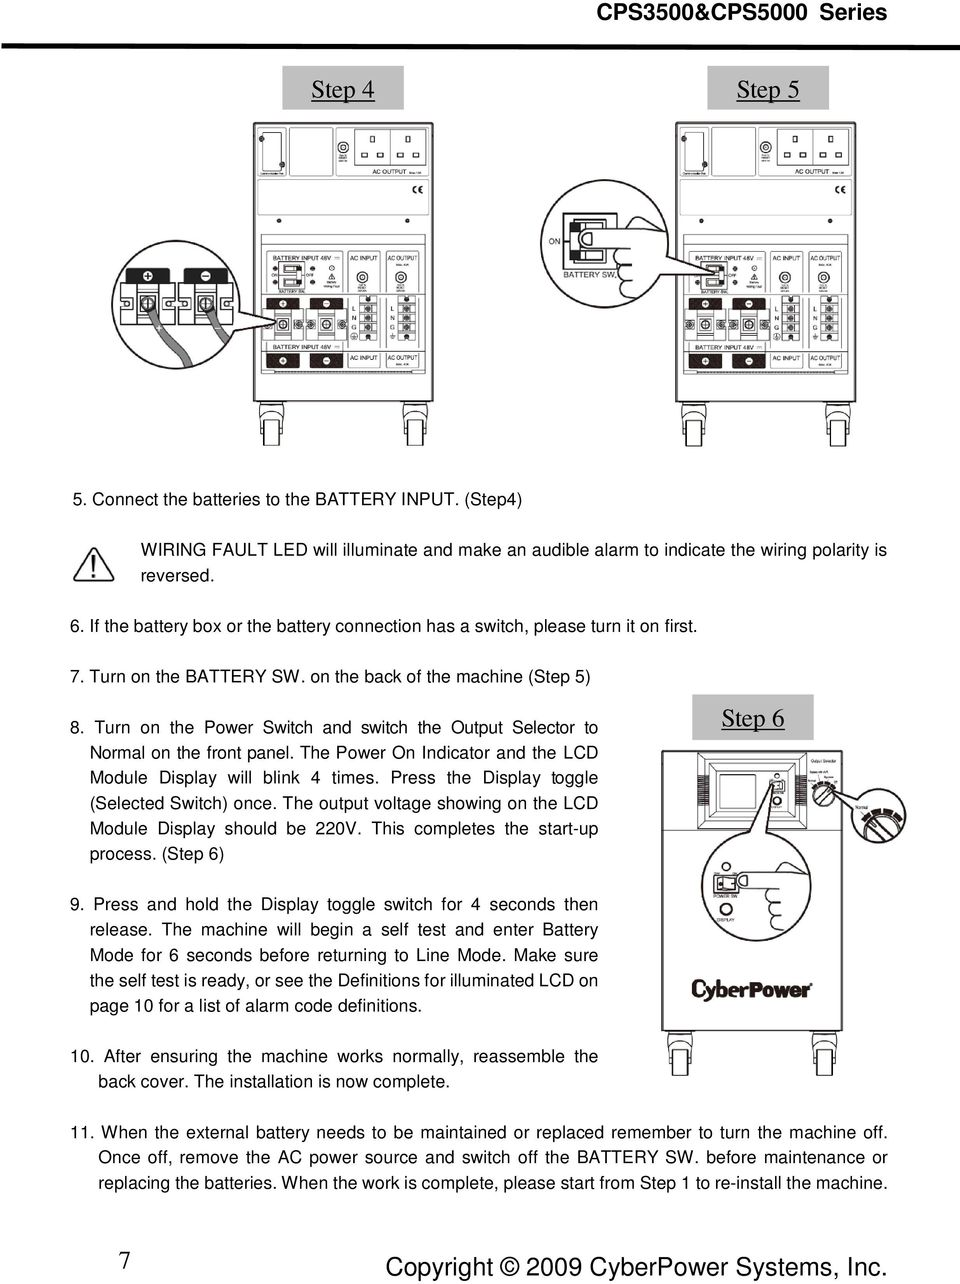 cyberpower 900avr battery replacement instructions